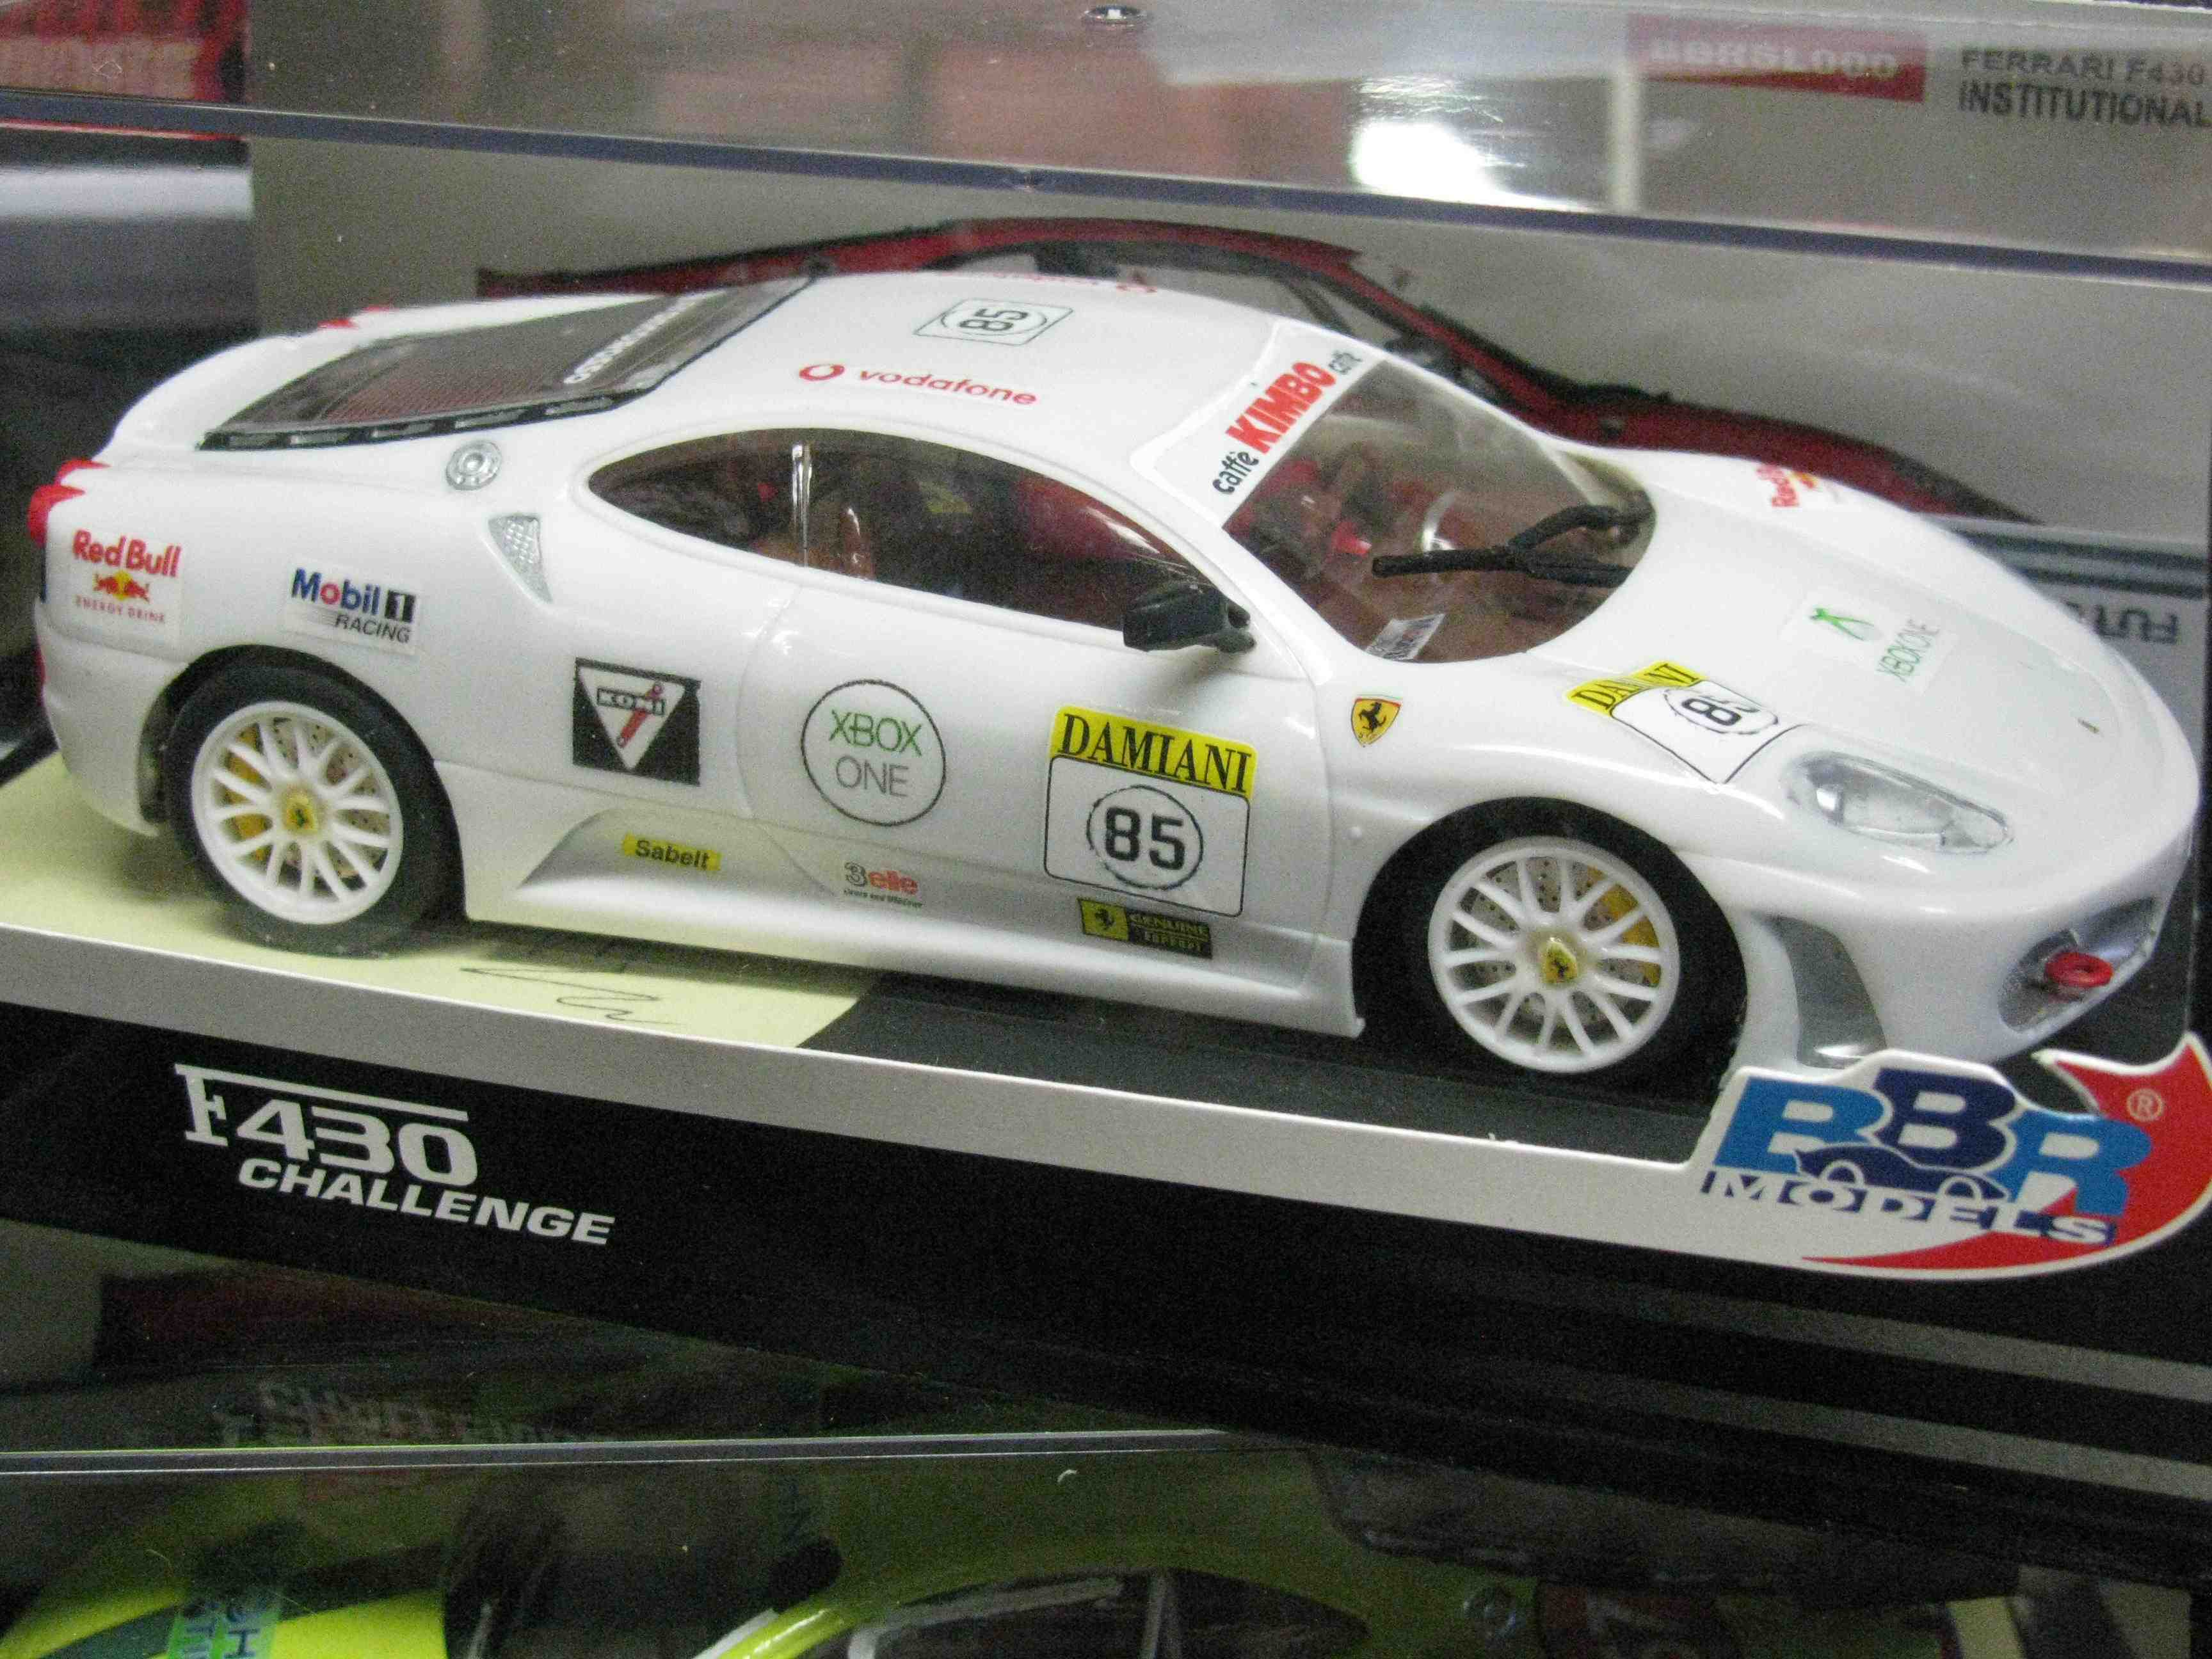 Ferrari F430 Challenge Slot Car in Brilliant Bianca White, with a custom Decal Design – Car #85